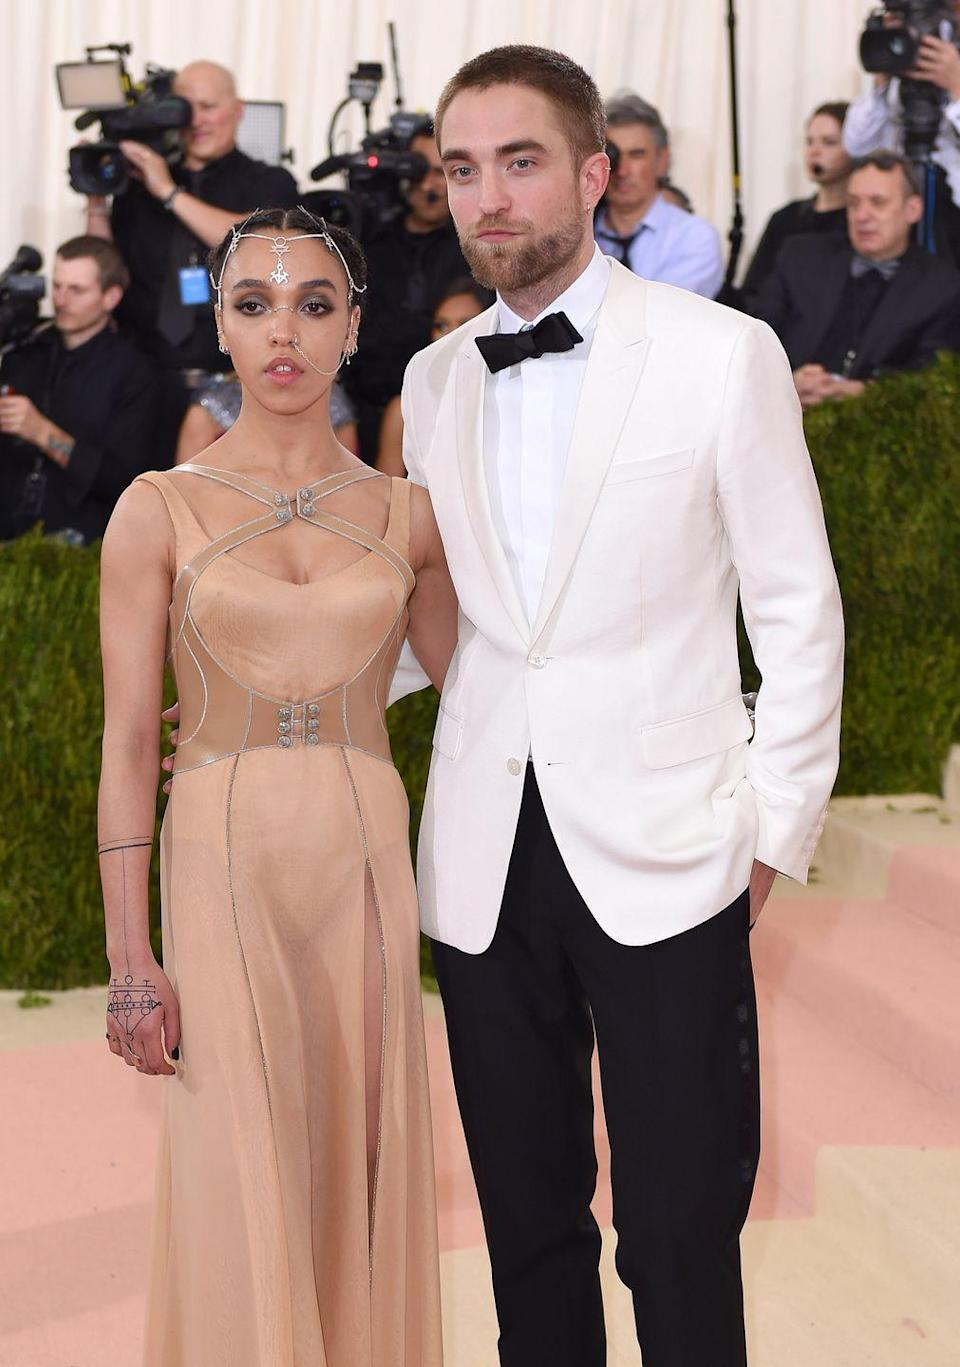 """<p>This couple's two-year relationship was initiated via a special <a href=""""https://www.eonline.com/de/news/592353/robert-pattinson-and-fka-twigs-were-set-up-by-sienna-miller-and-tom-sturridge"""" rel=""""nofollow noopener"""" target=""""_blank"""" data-ylk=""""slk:introduction"""" class=""""link rapid-noclick-resp"""">introduction</a> by Sienna Miller and her then-beau Tom Sturridge. The three actors attended an FKA Twigs concert together, and Sturridge made sure to get Pattinson backstage access to meet the singer. </p>"""